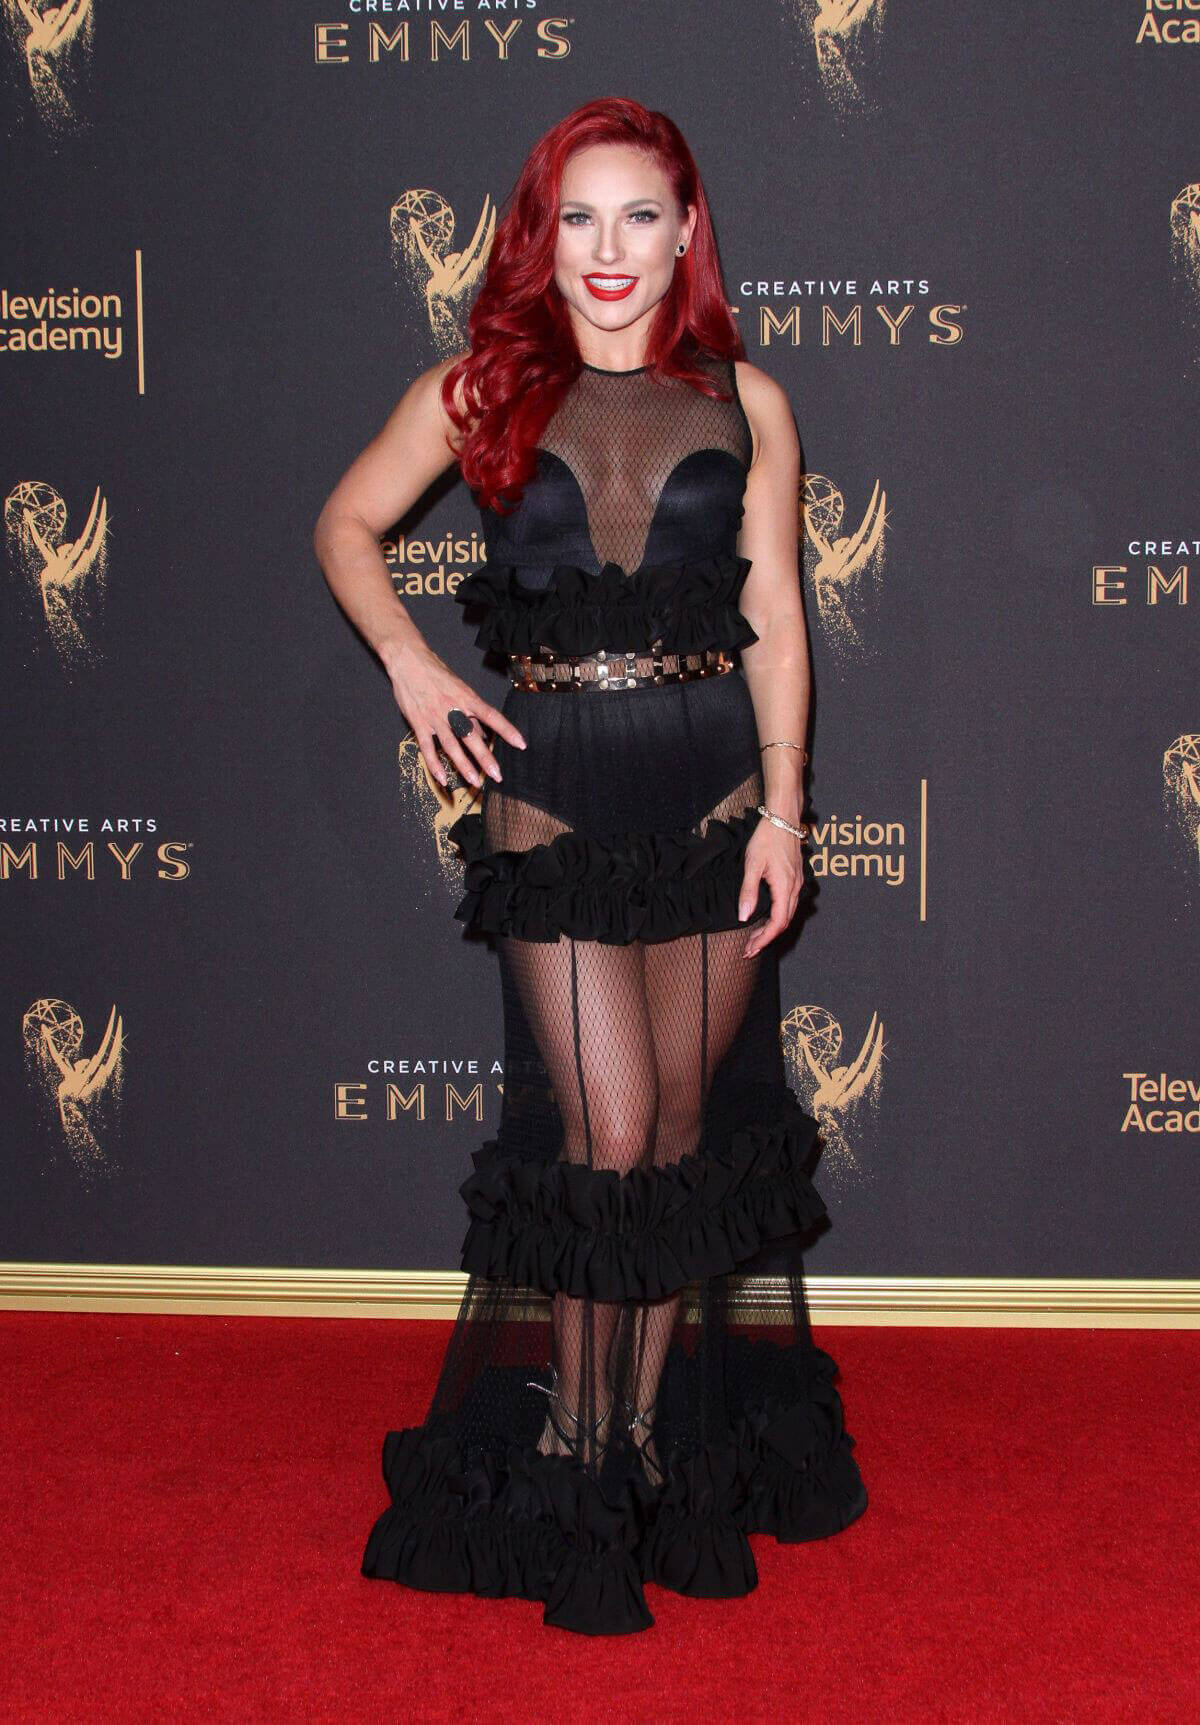 Sharna Burgess at Creative Arts Emmy Awards in Los Angeles